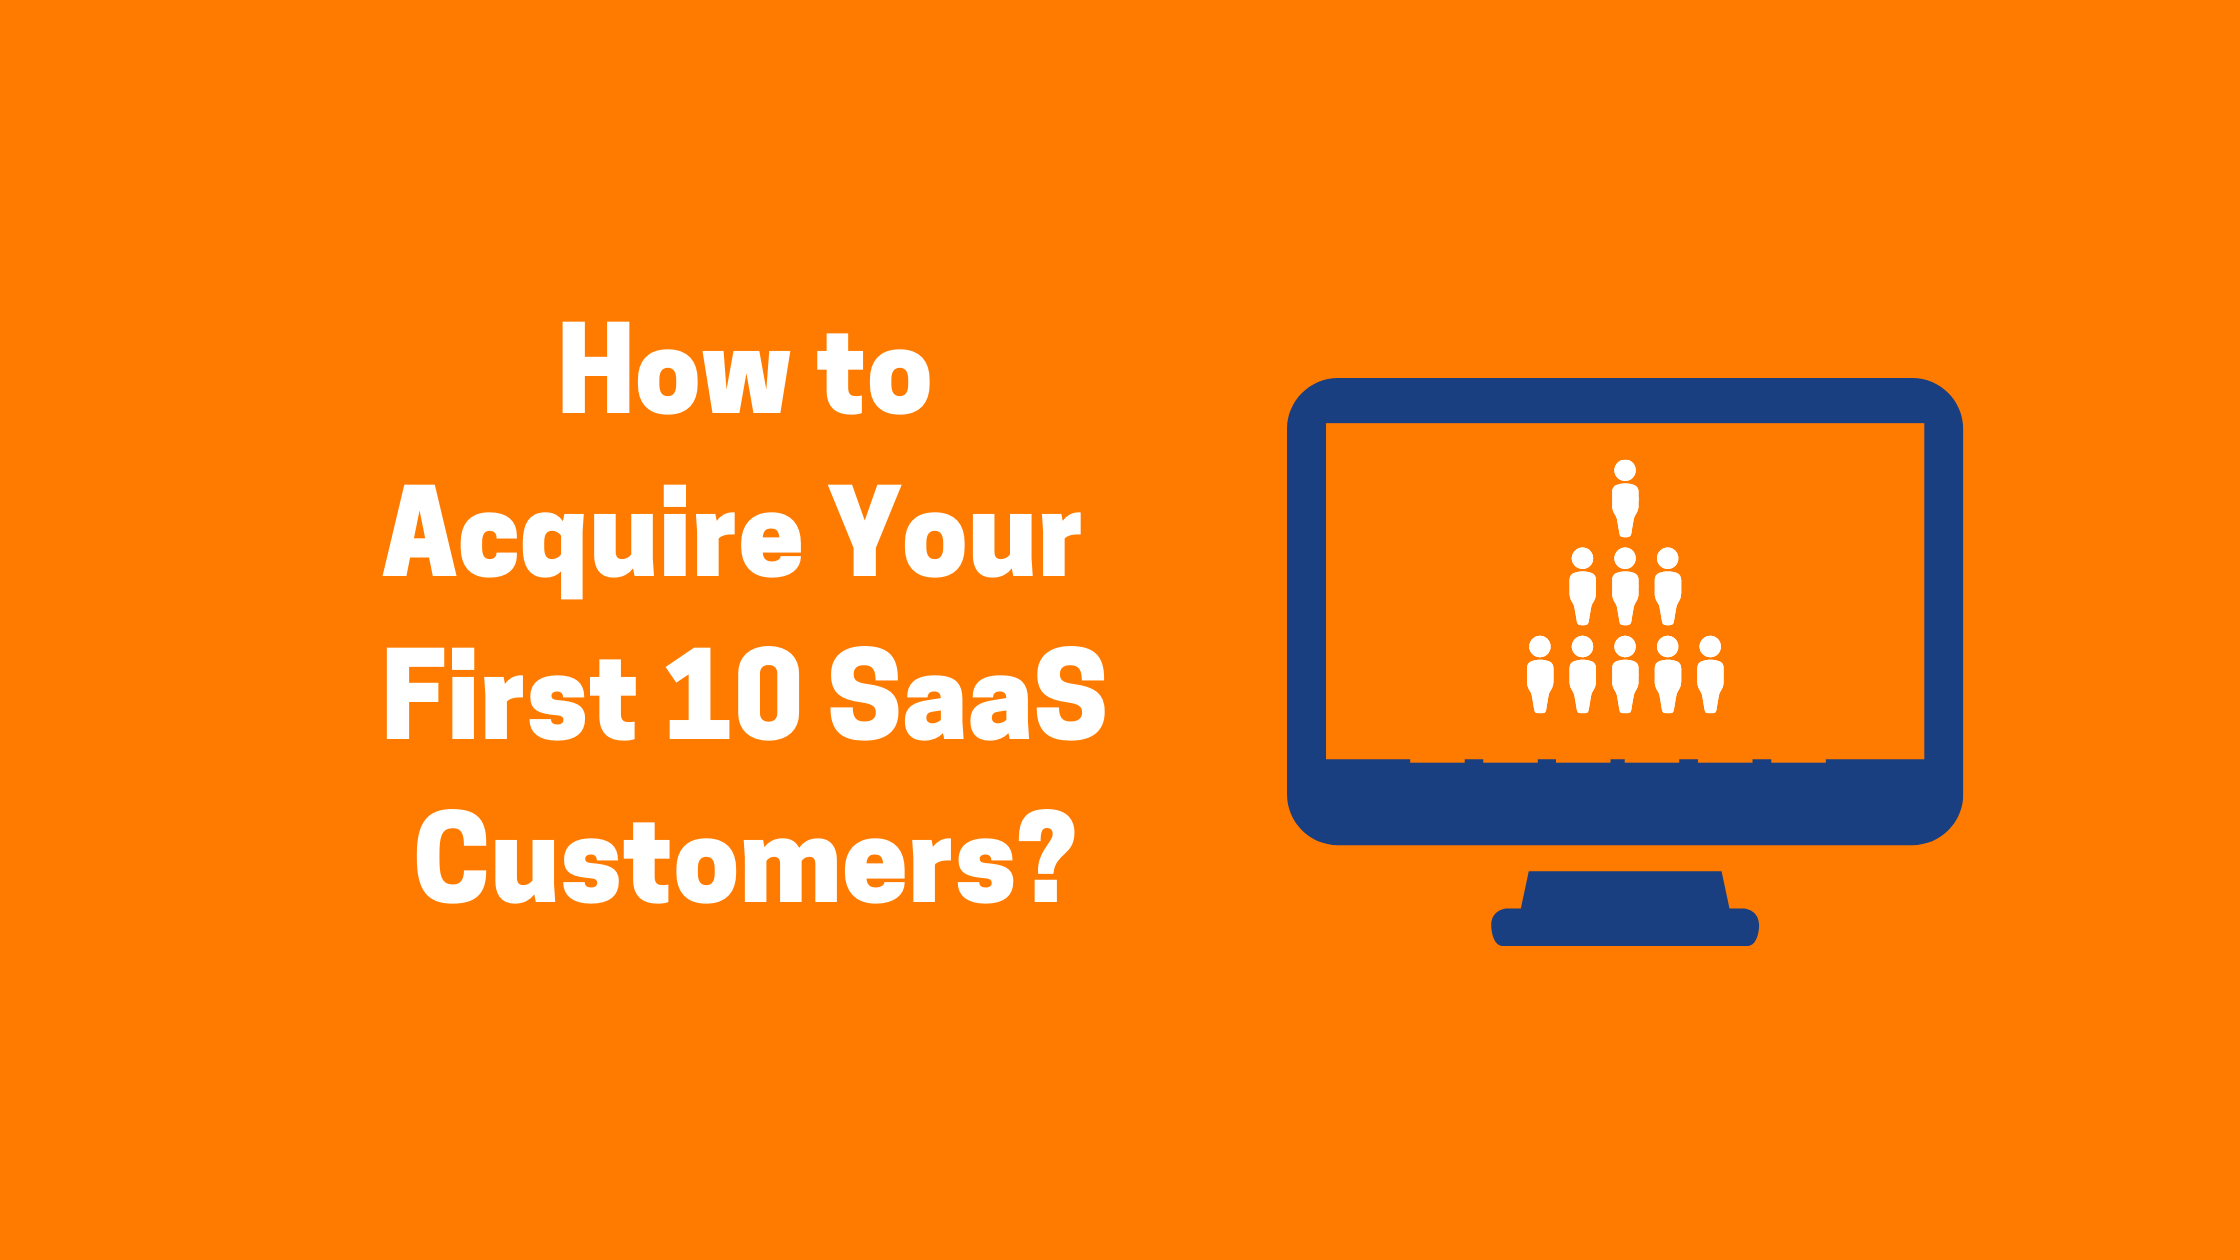 How to acquire your first 10 SaaS Customers?